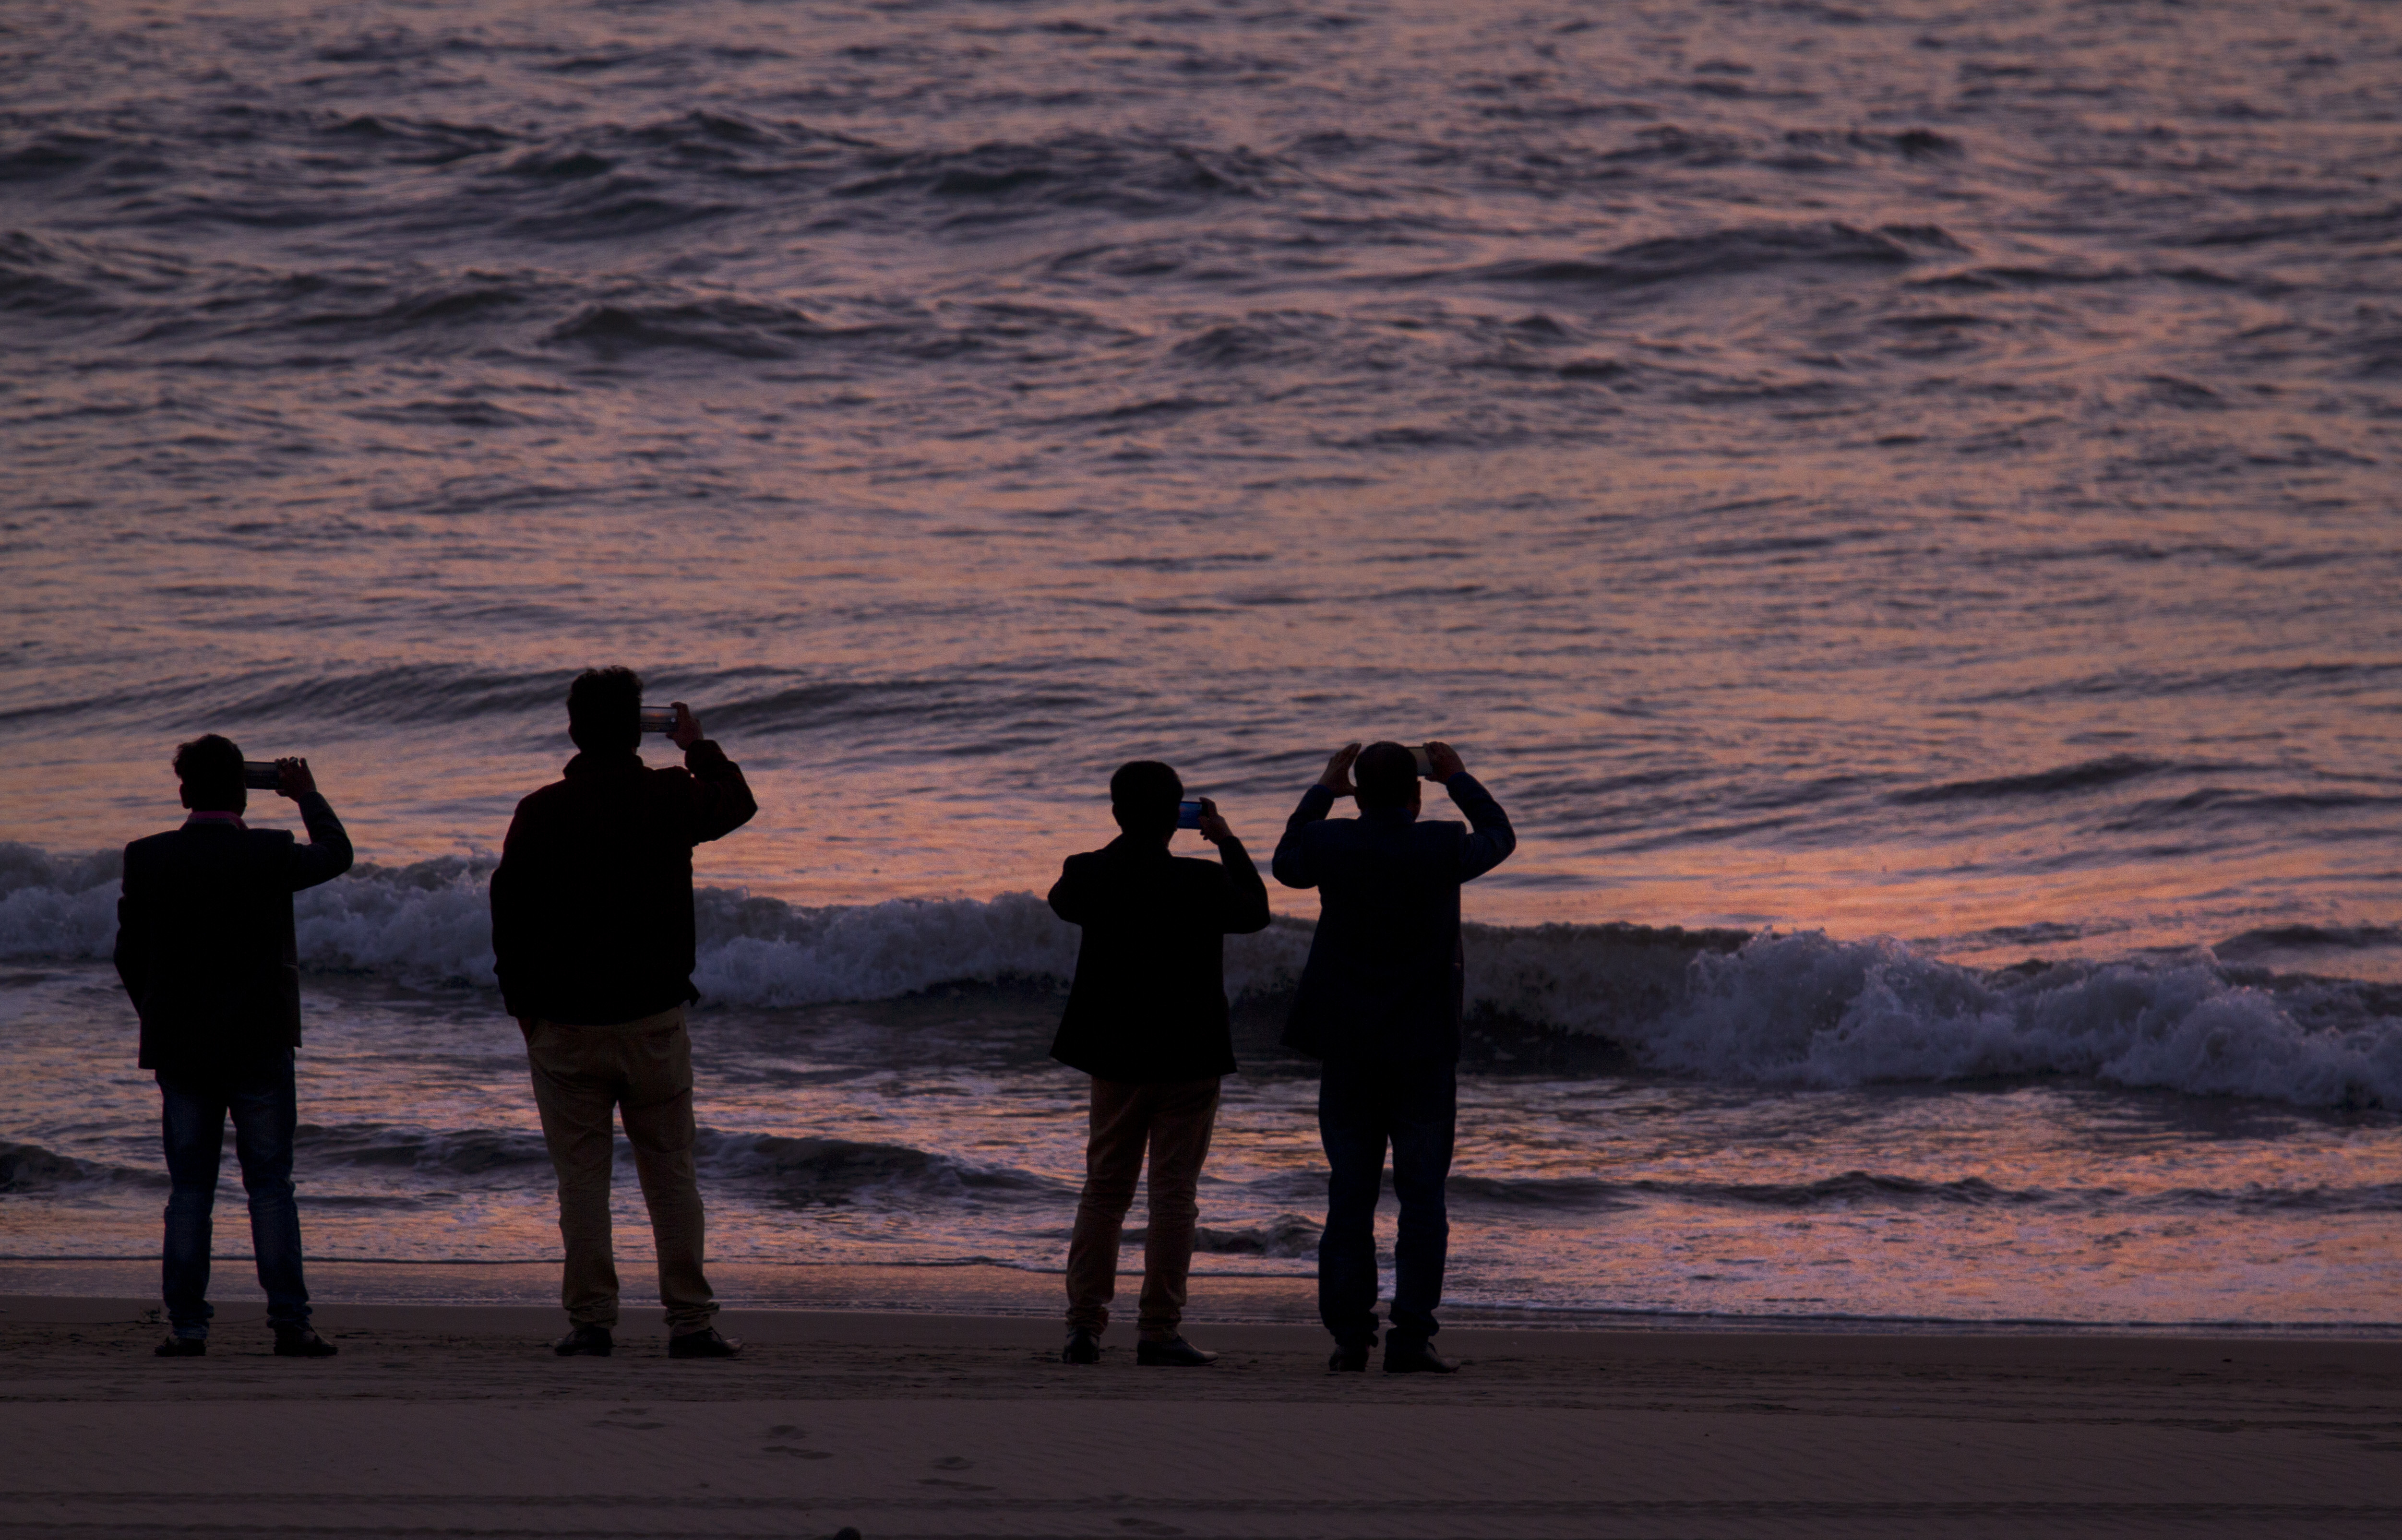 Local tourists record the setting Sun on the Bay of Bengal from the beach in Cox's Bazar, Bangladesh, Sunday, Jan. 28, 2018. Miles-long beaches makes this coastal district Bangladesh's top tourist destination. (AP Photo/Manish Swarup)